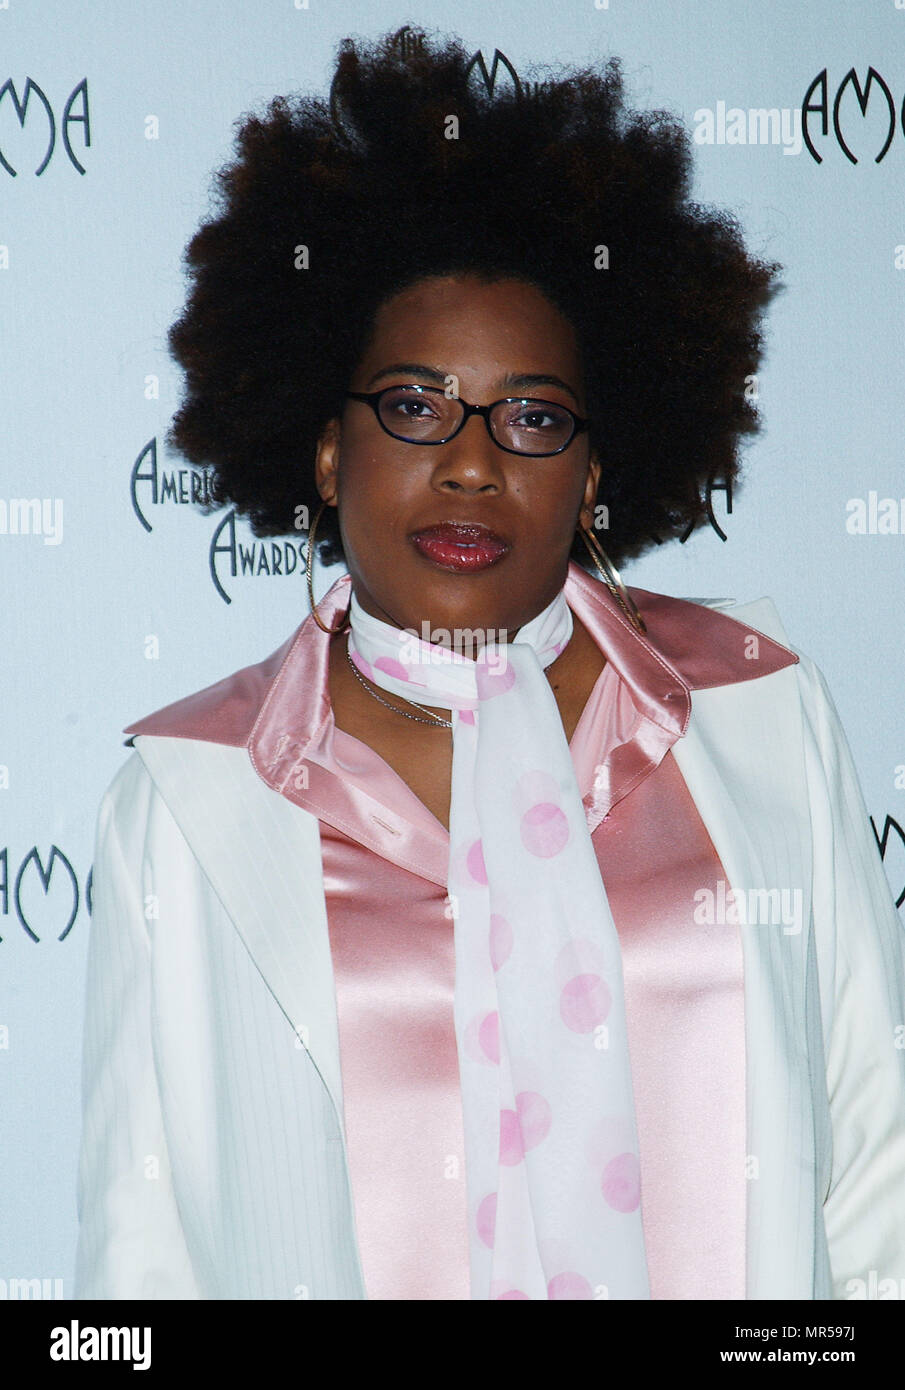 Macy Gray presenting the nominees at the American Music Awards at the Beverly Hills Hotel in Los Angeles. September 16, 2003.GrayMacy_06 Red Carpet Event, Vertical, USA, Film Industry, Celebrities,  Photography, Bestof, Arts Culture and Entertainment, Topix Celebrities fashion /  Vertical, Best of, Event in Hollywood Life - California,  Red Carpet and backstage, USA, Film Industry, Celebrities,  movie celebrities, TV celebrities, Music celebrities, Photography, Bestof, Arts Culture and Entertainment,  Topix, headshot, vertical, one person,, from the year , 2003, inquiry tsuni@Gamma-USA.com - Stock Image